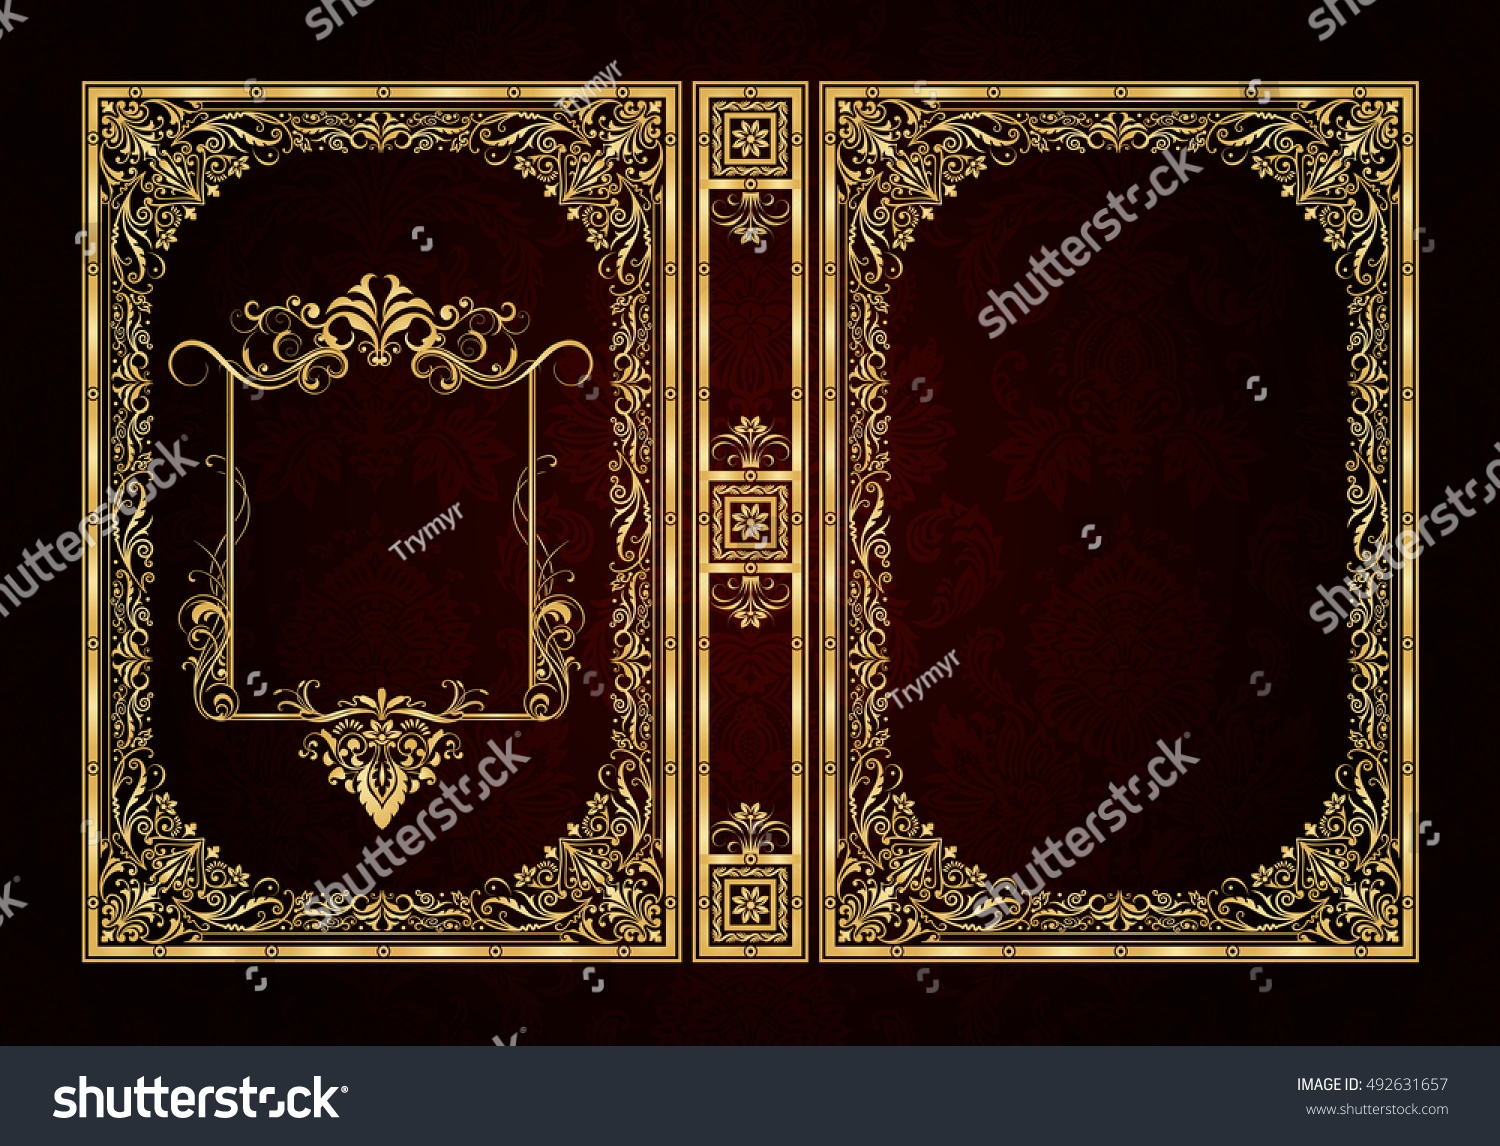 Cool Book Cover Vector : Vector classical book cover decorative vintage stock